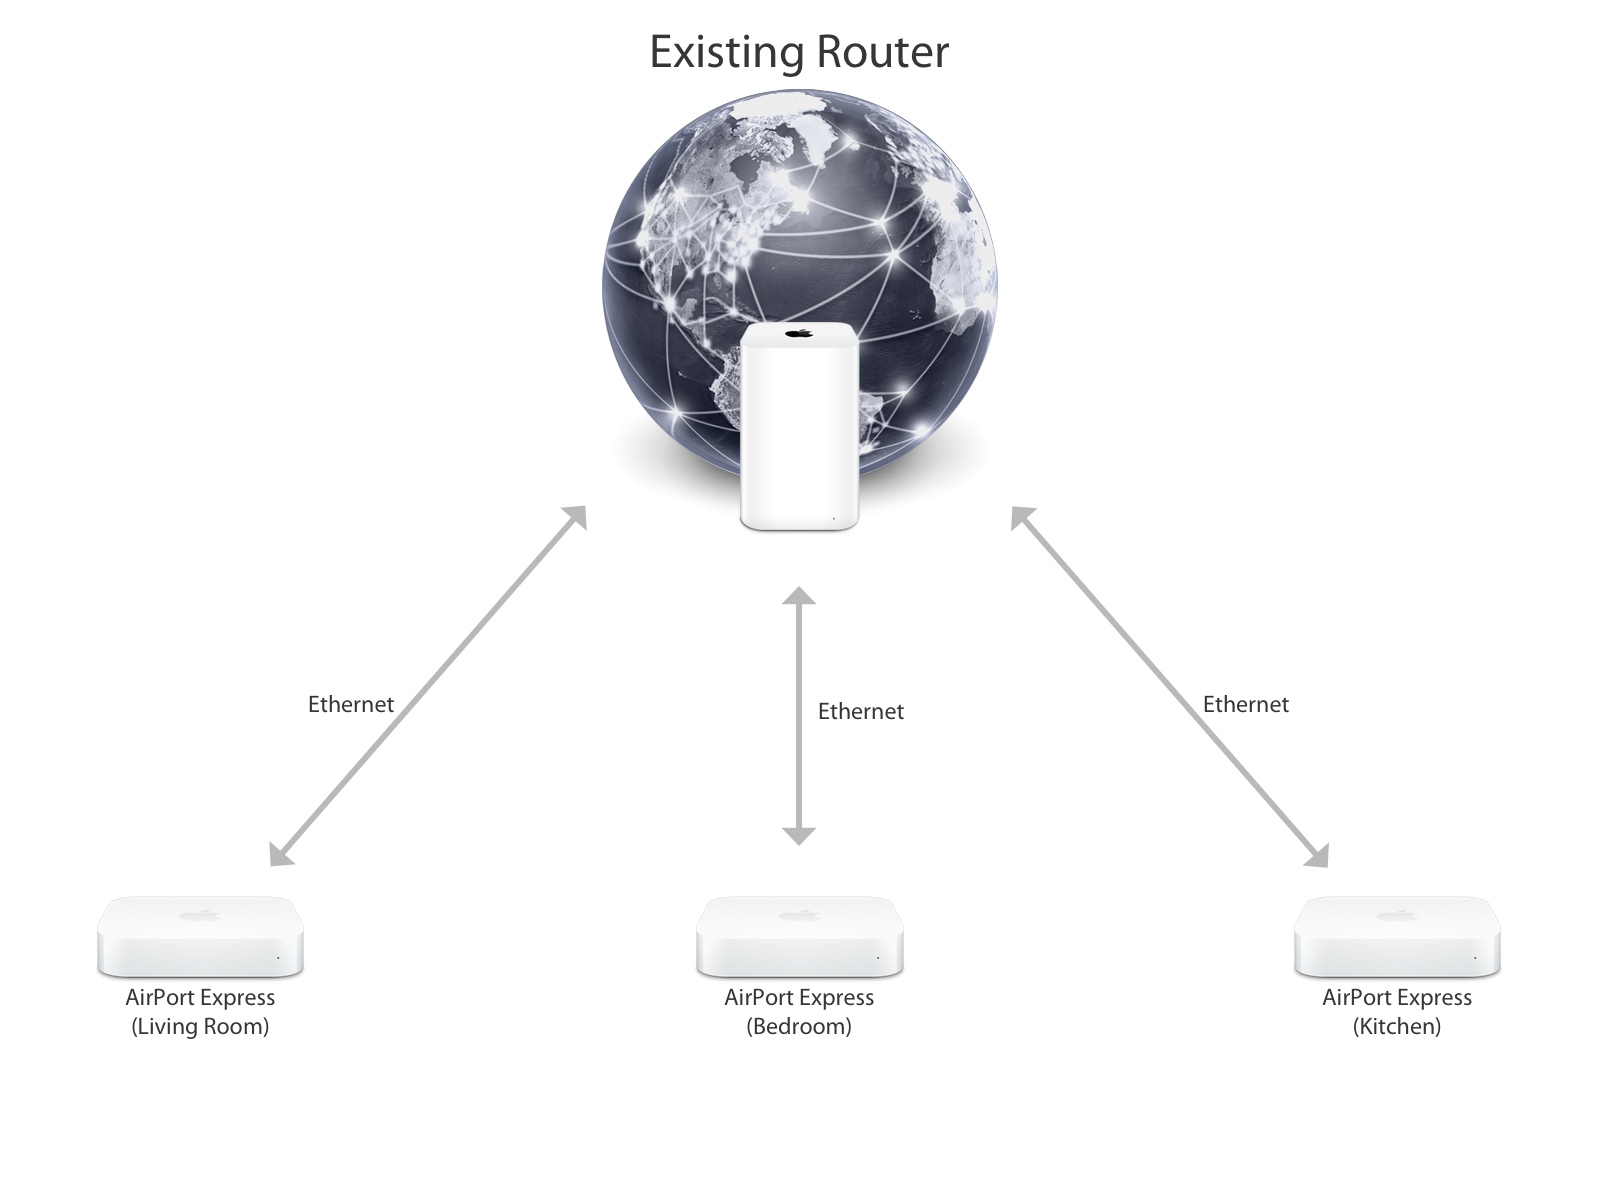 A typical network layout for using multiple AirPort Express base stations over Ethernet